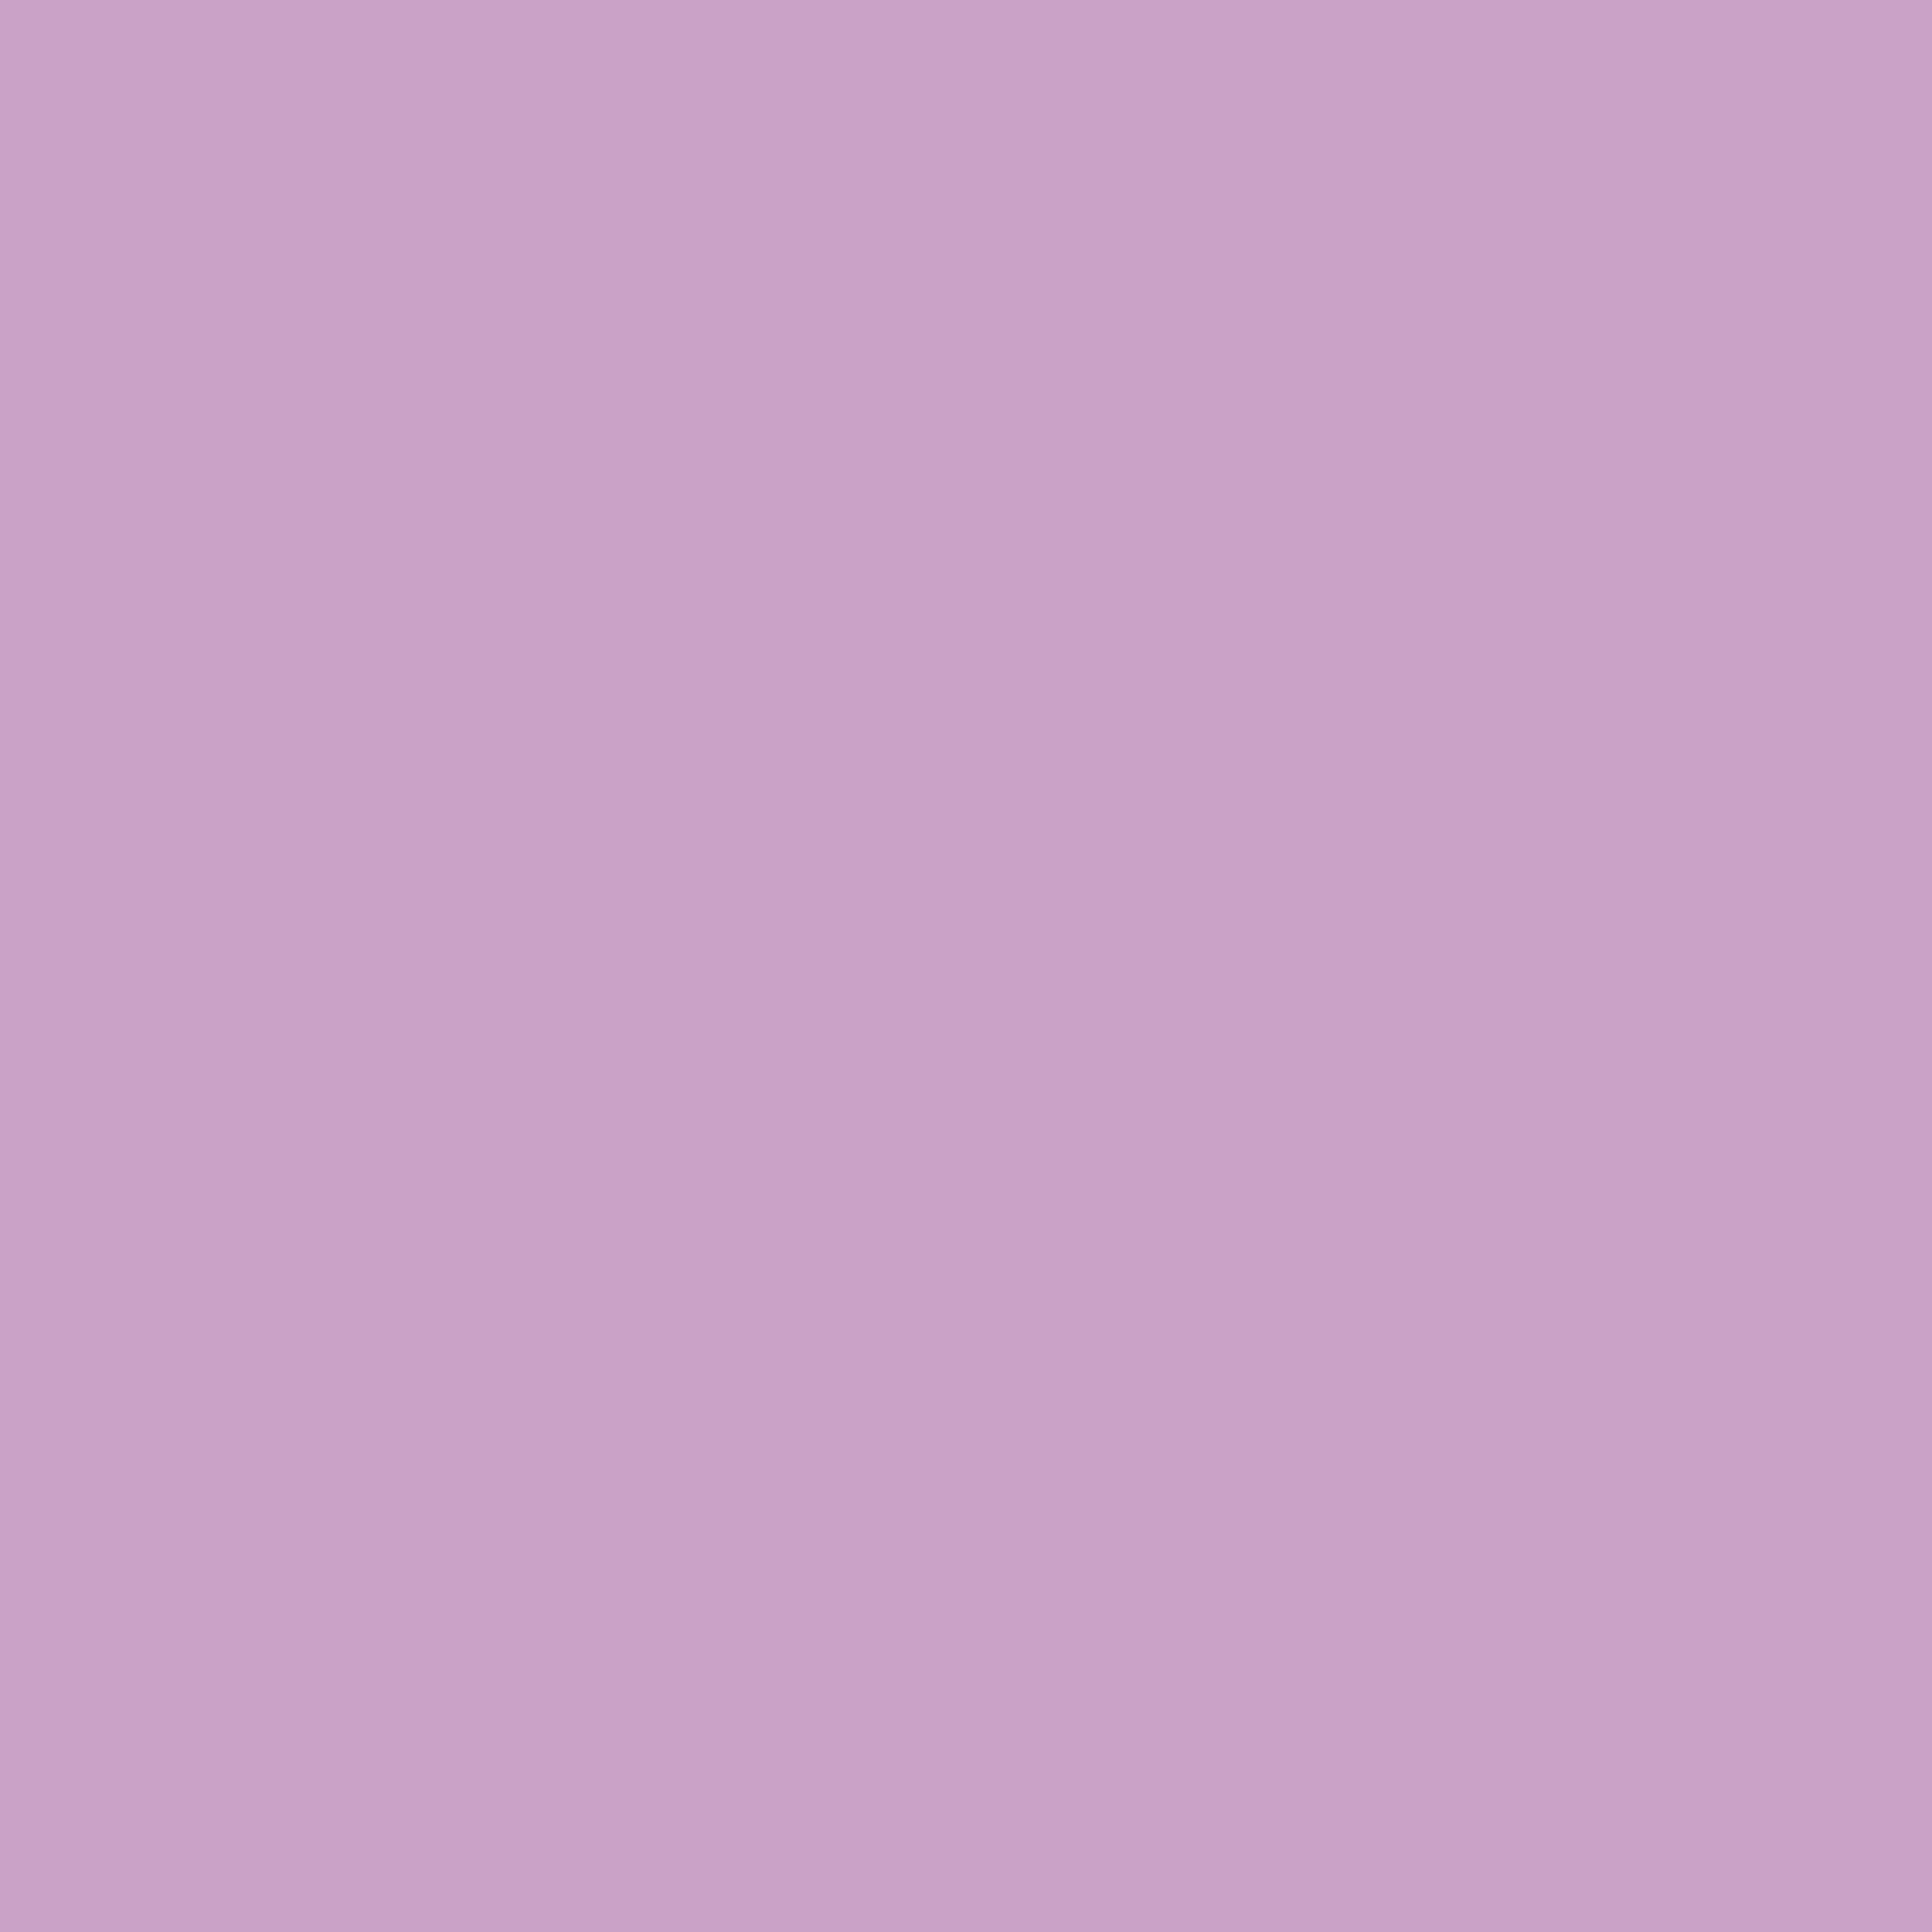 2732x2732 Lilac Solid Color Background